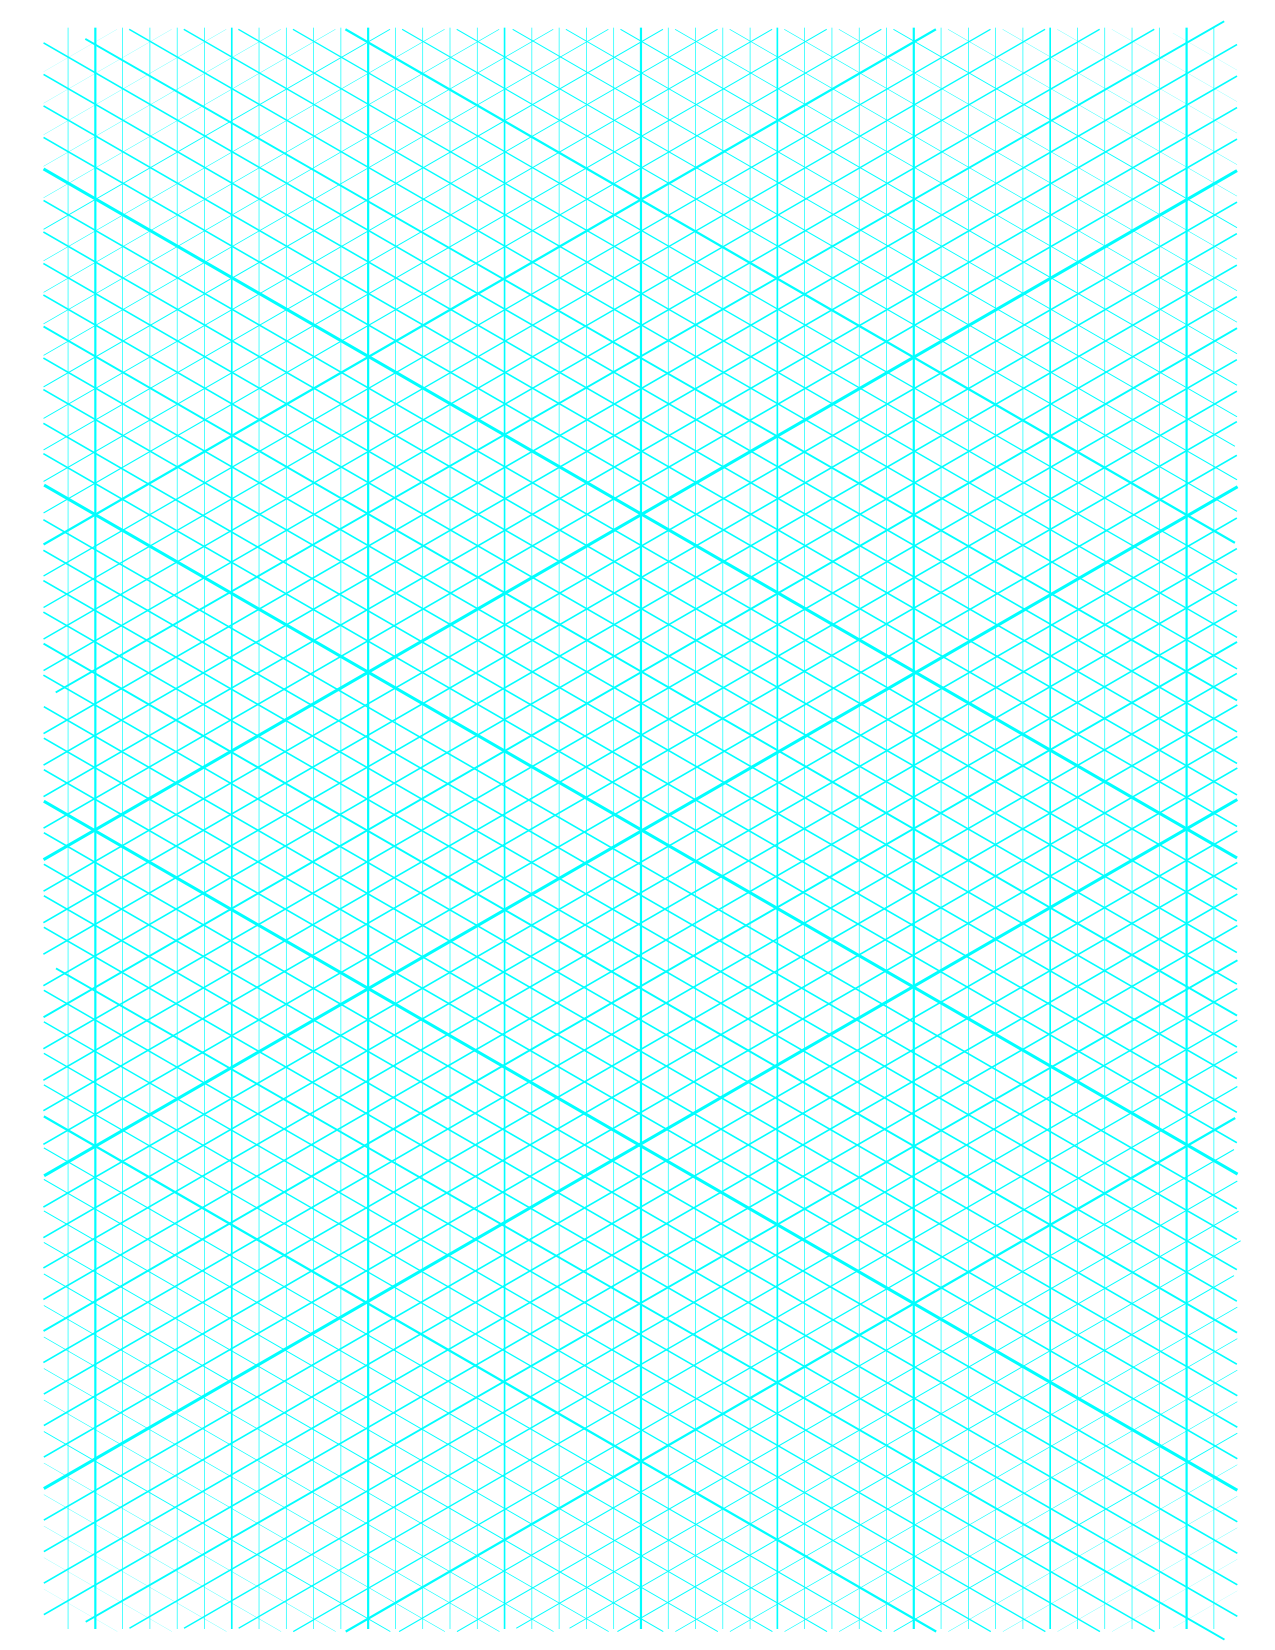 File:Isometric graph paper YP.png - Wikimedia Commons